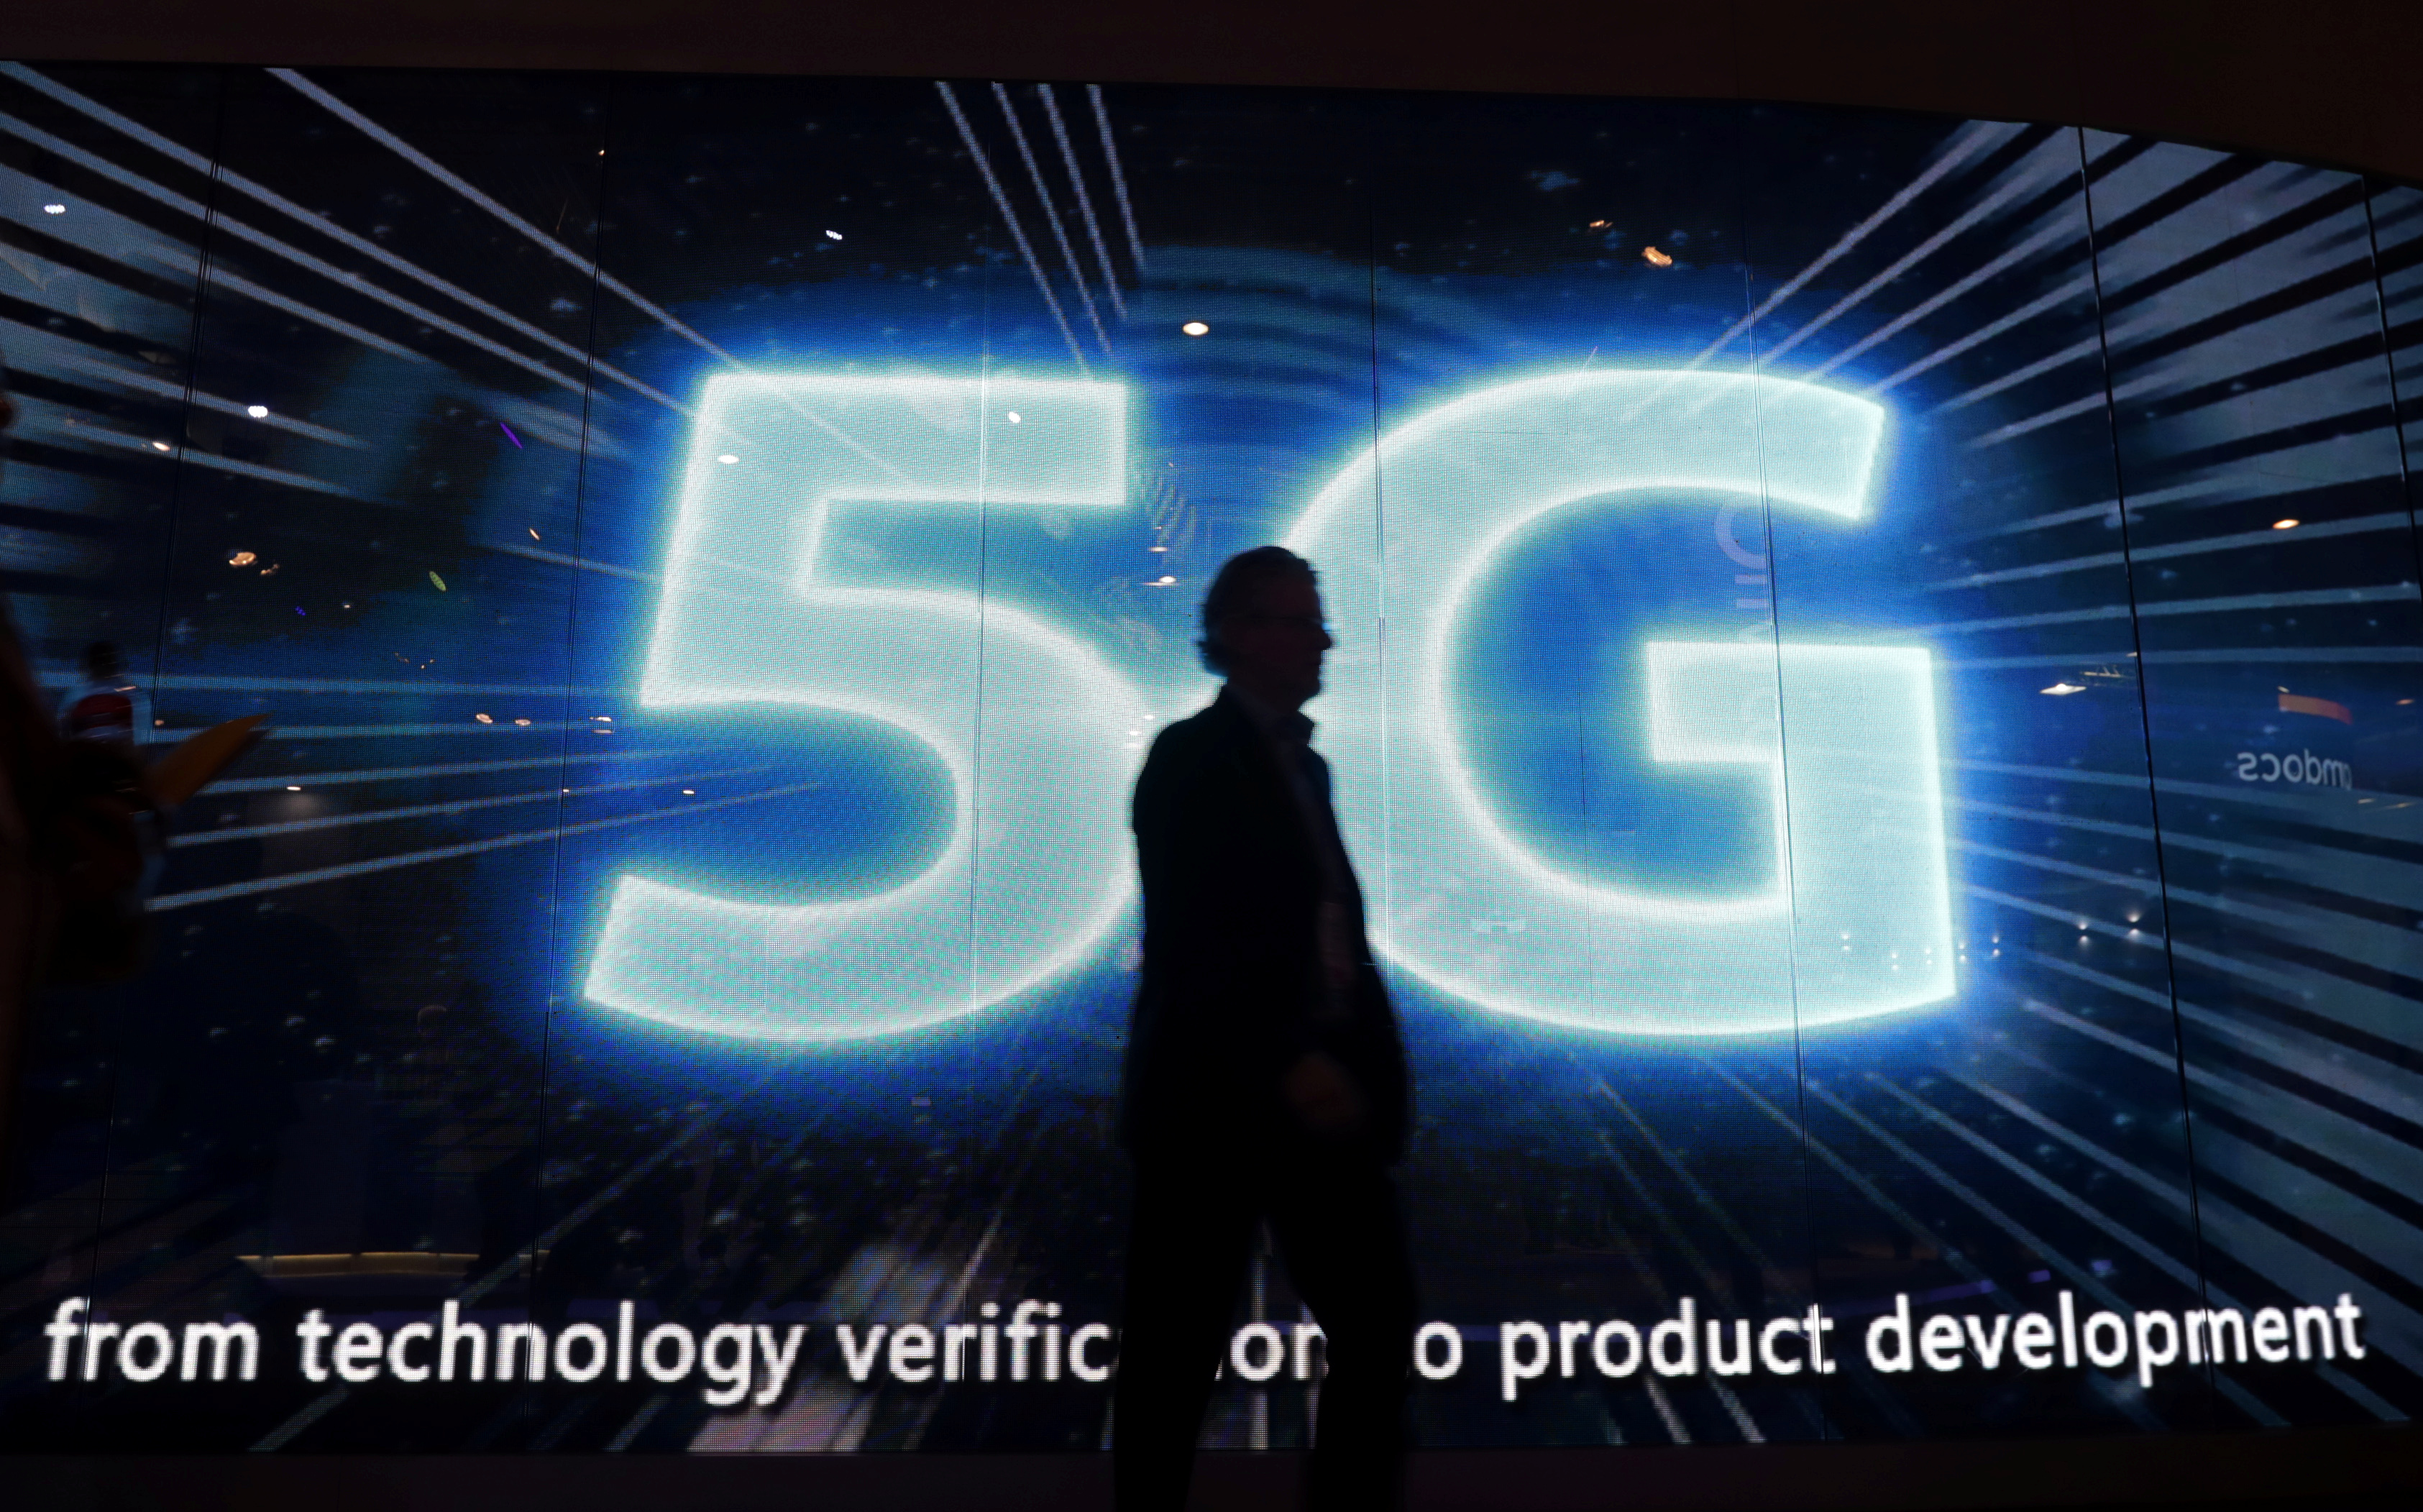 Building A Secure 5g Network Without Nationalization